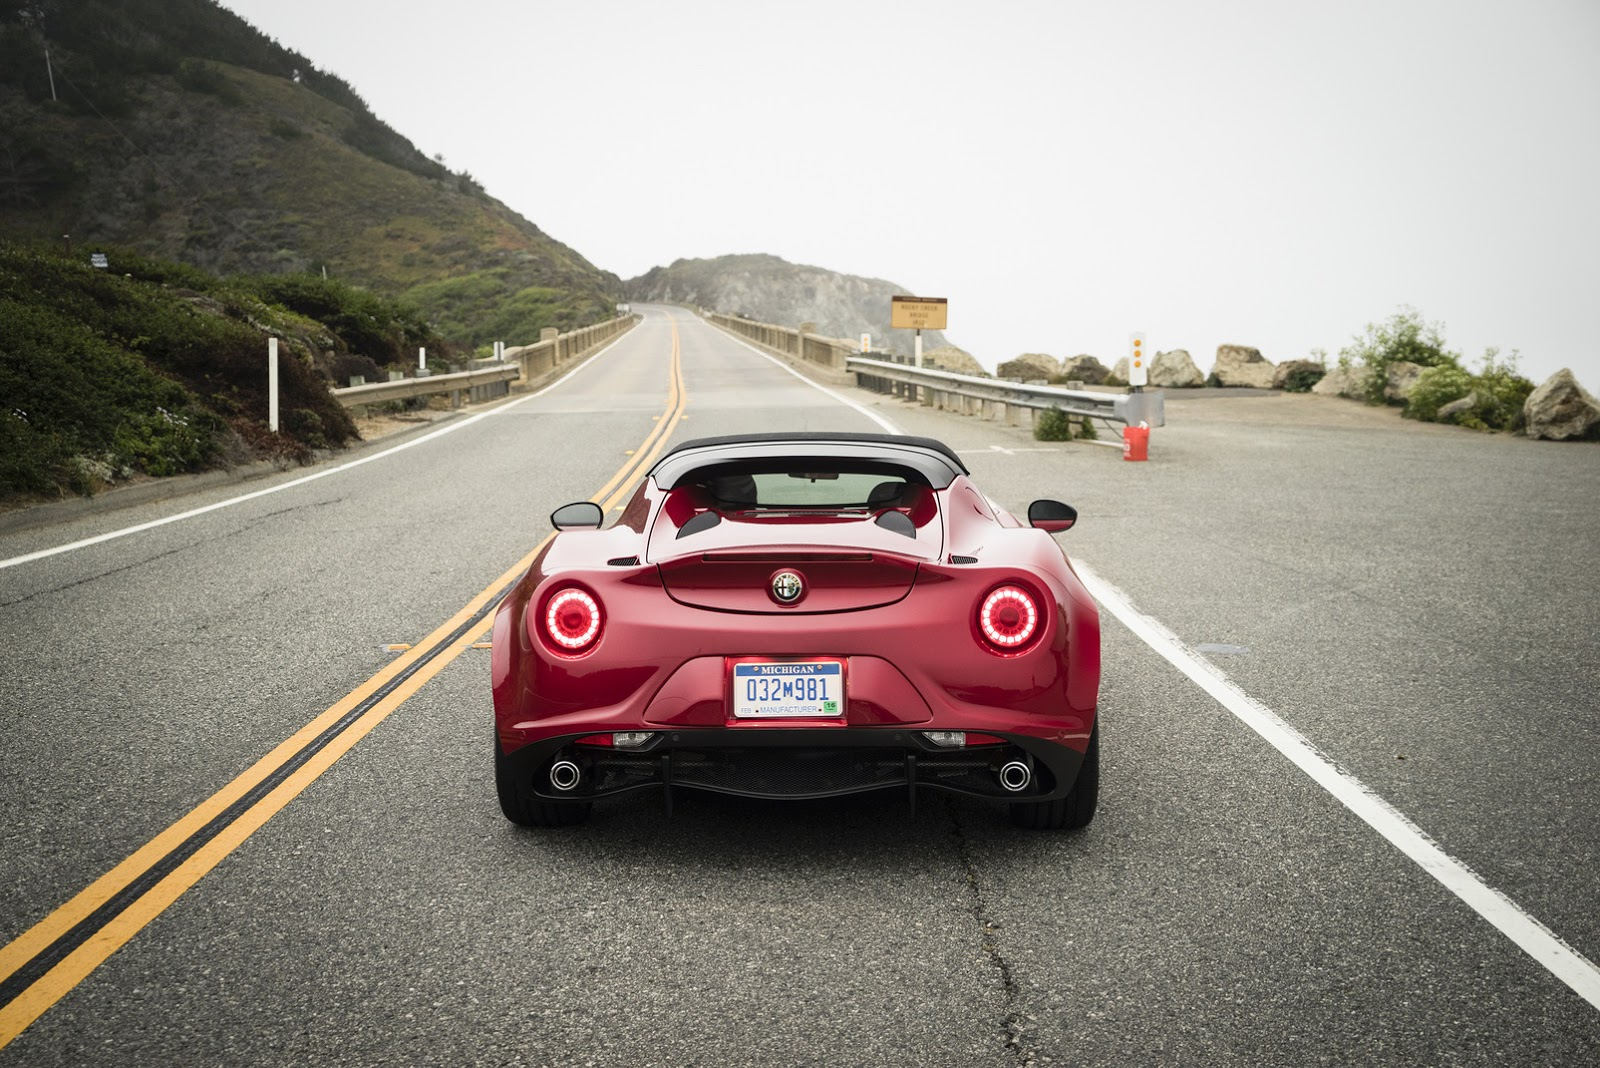 The Perfect Date Night Car Alfa Romeo 4c Spider Rear Red 2016 Back Tail Lights